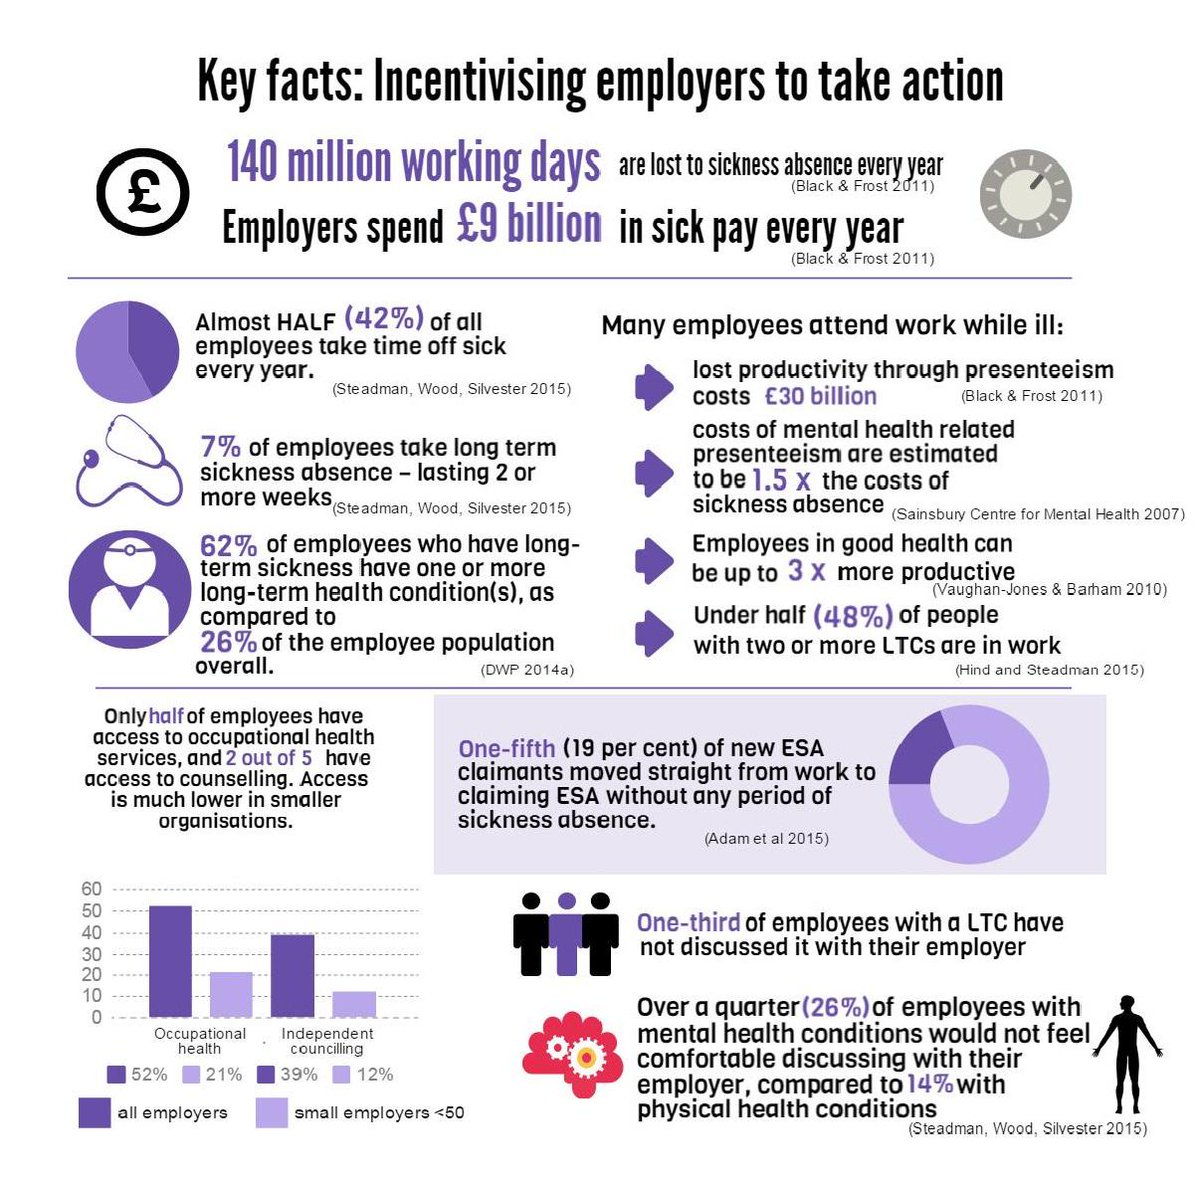 Workforce health in numbers - 1 in 4 employees with #mentalhealth conditions not comfortable discussing it at work http://t.co/tm7AHciY9Y